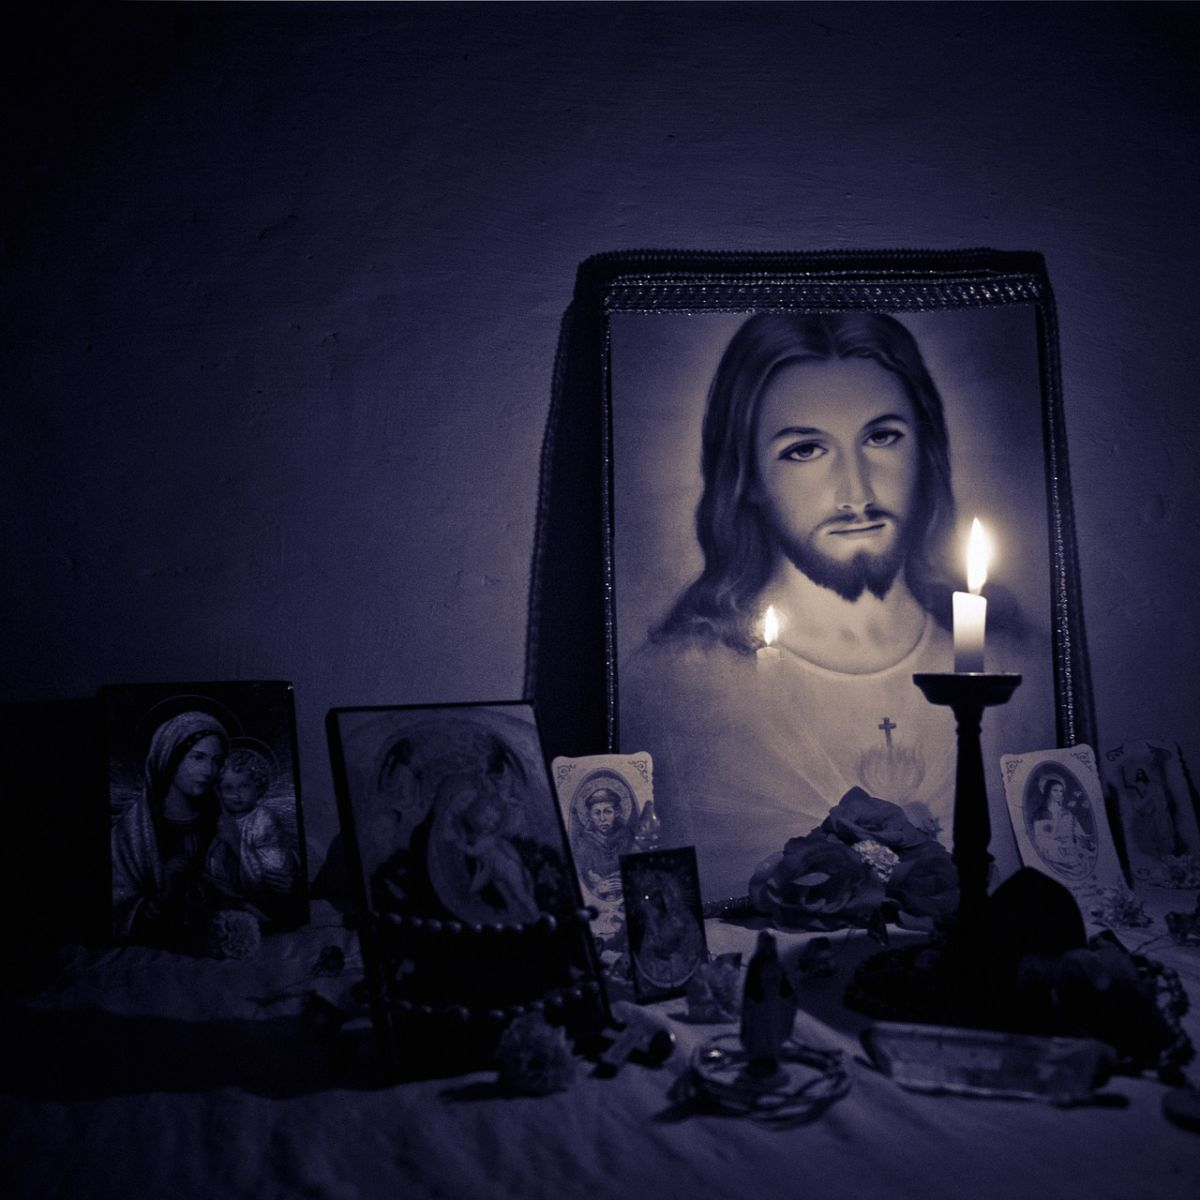 Jesus christ on a picture with candlelight